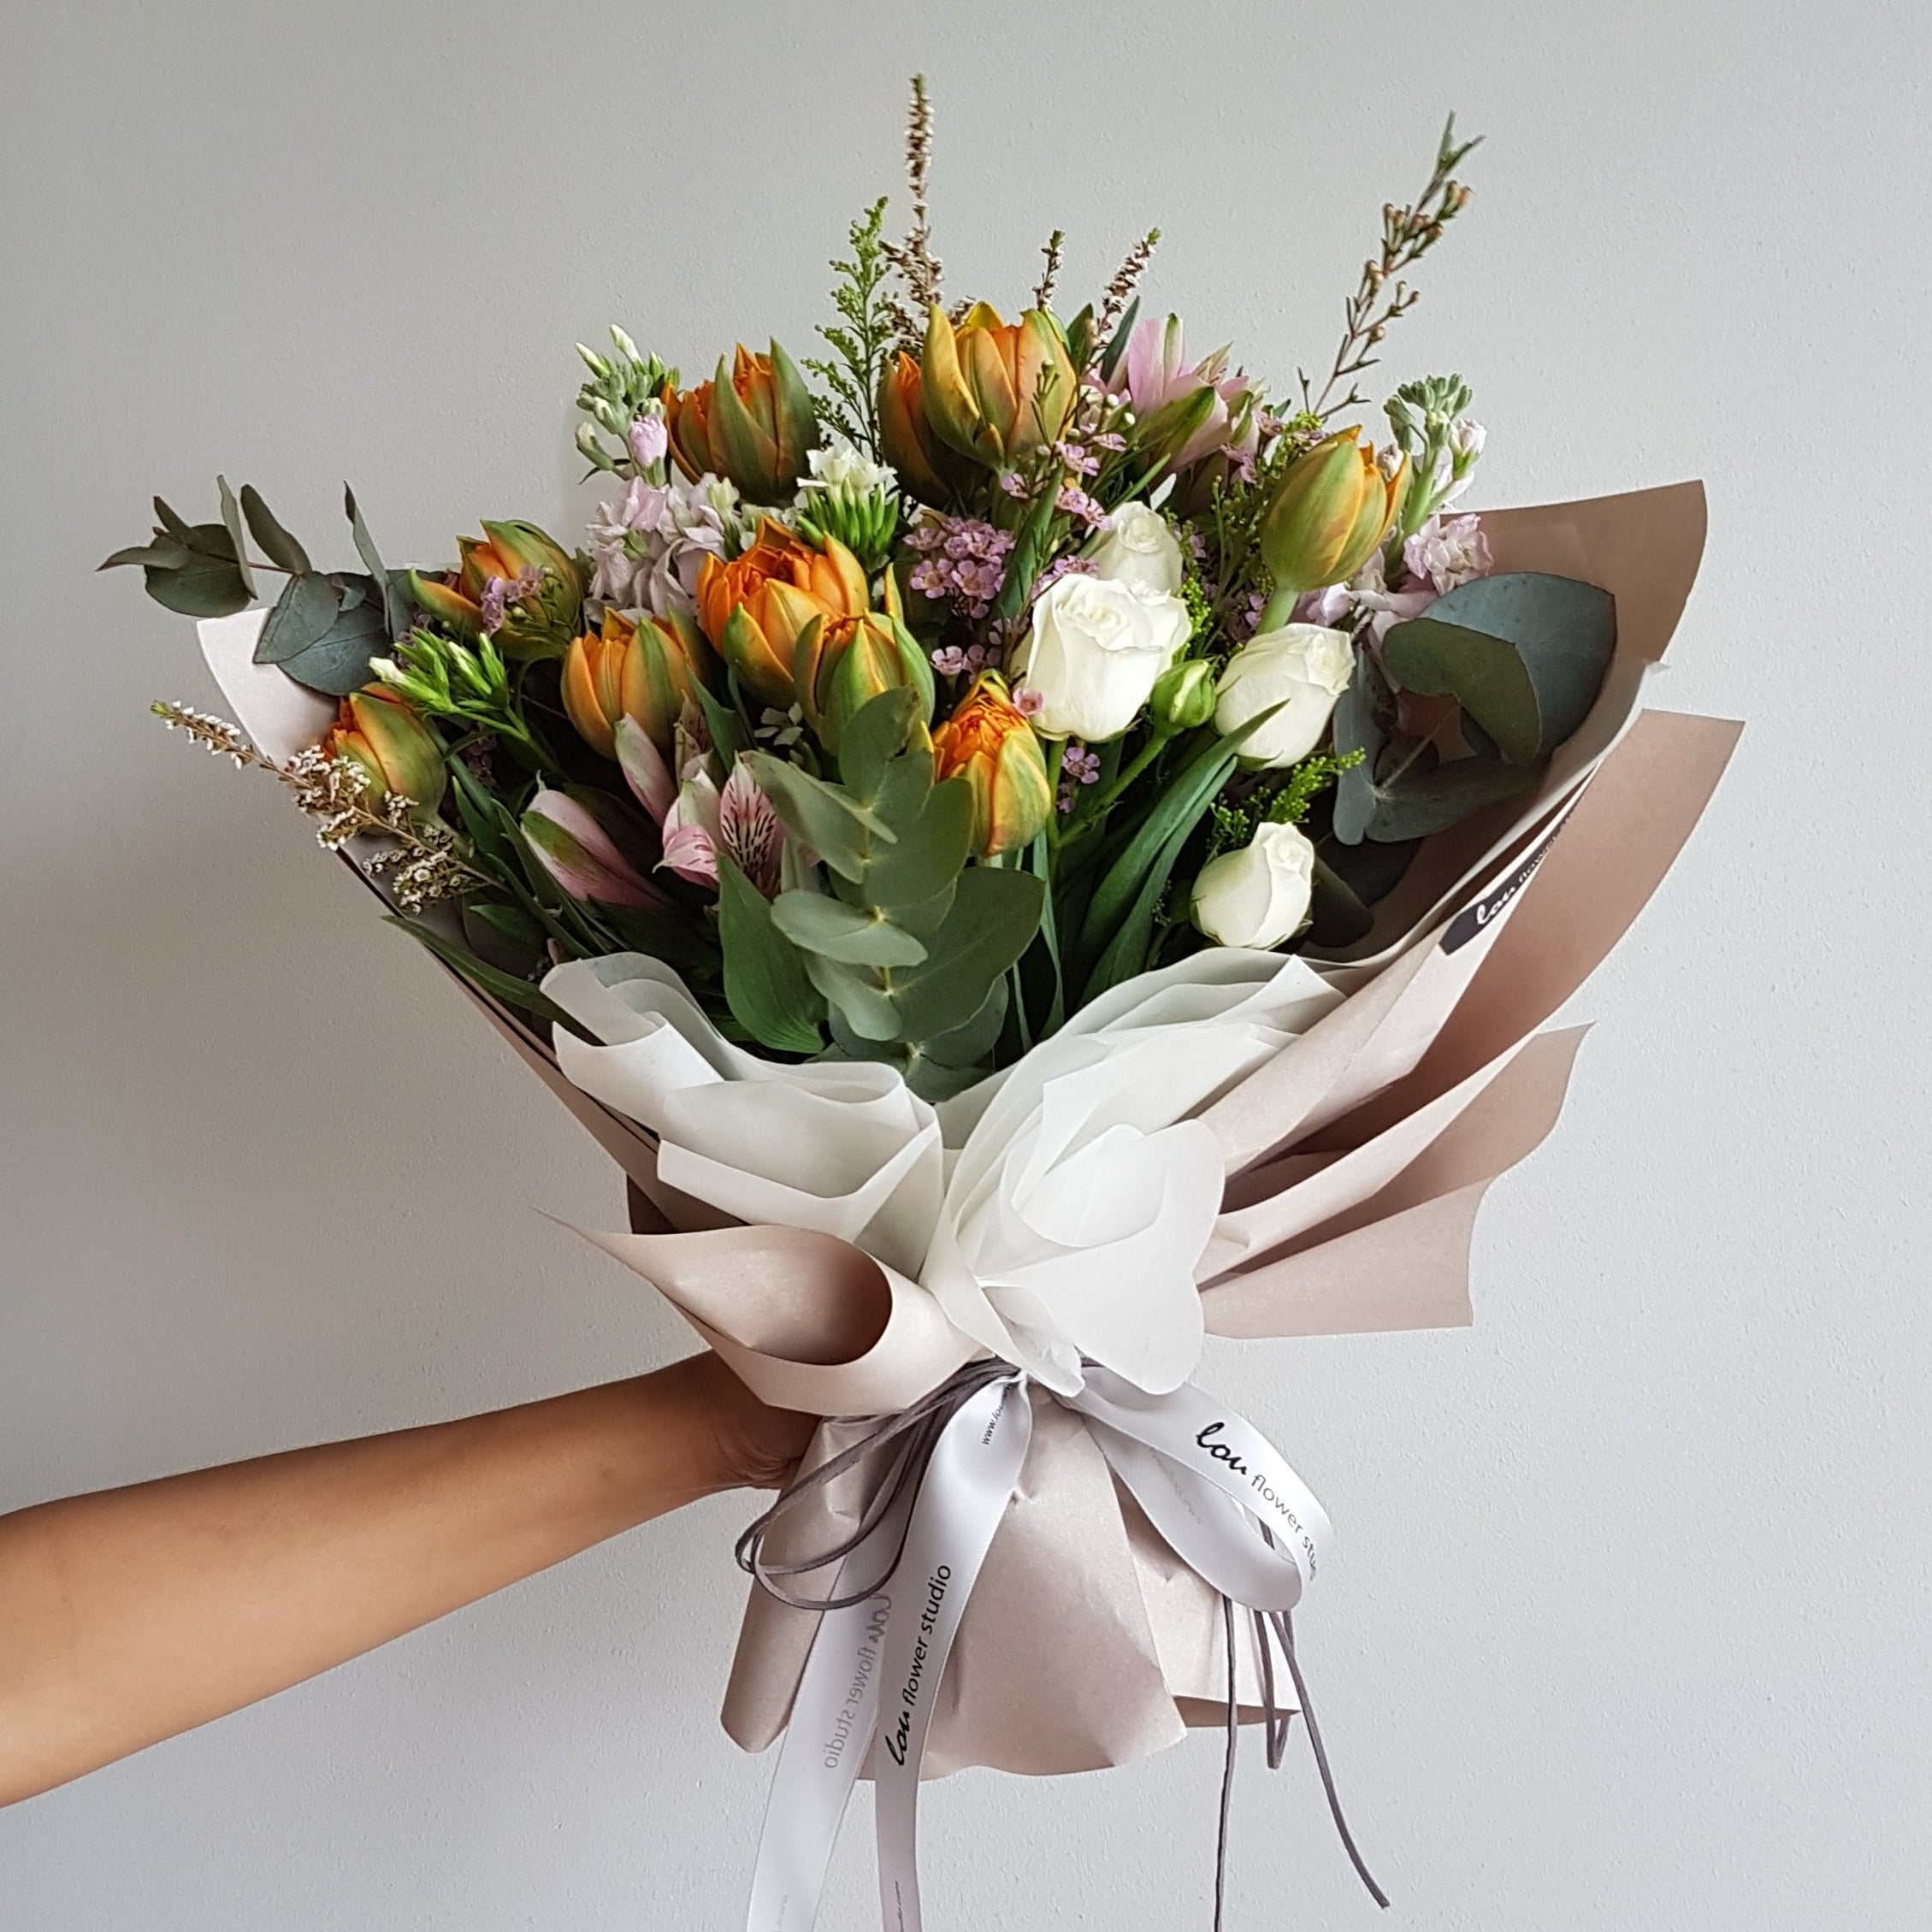 Tulips bouquet lou flower studio free delivery tulip bouquet upsized with premium filler flowers and foilages free delivery izmirmasajfo